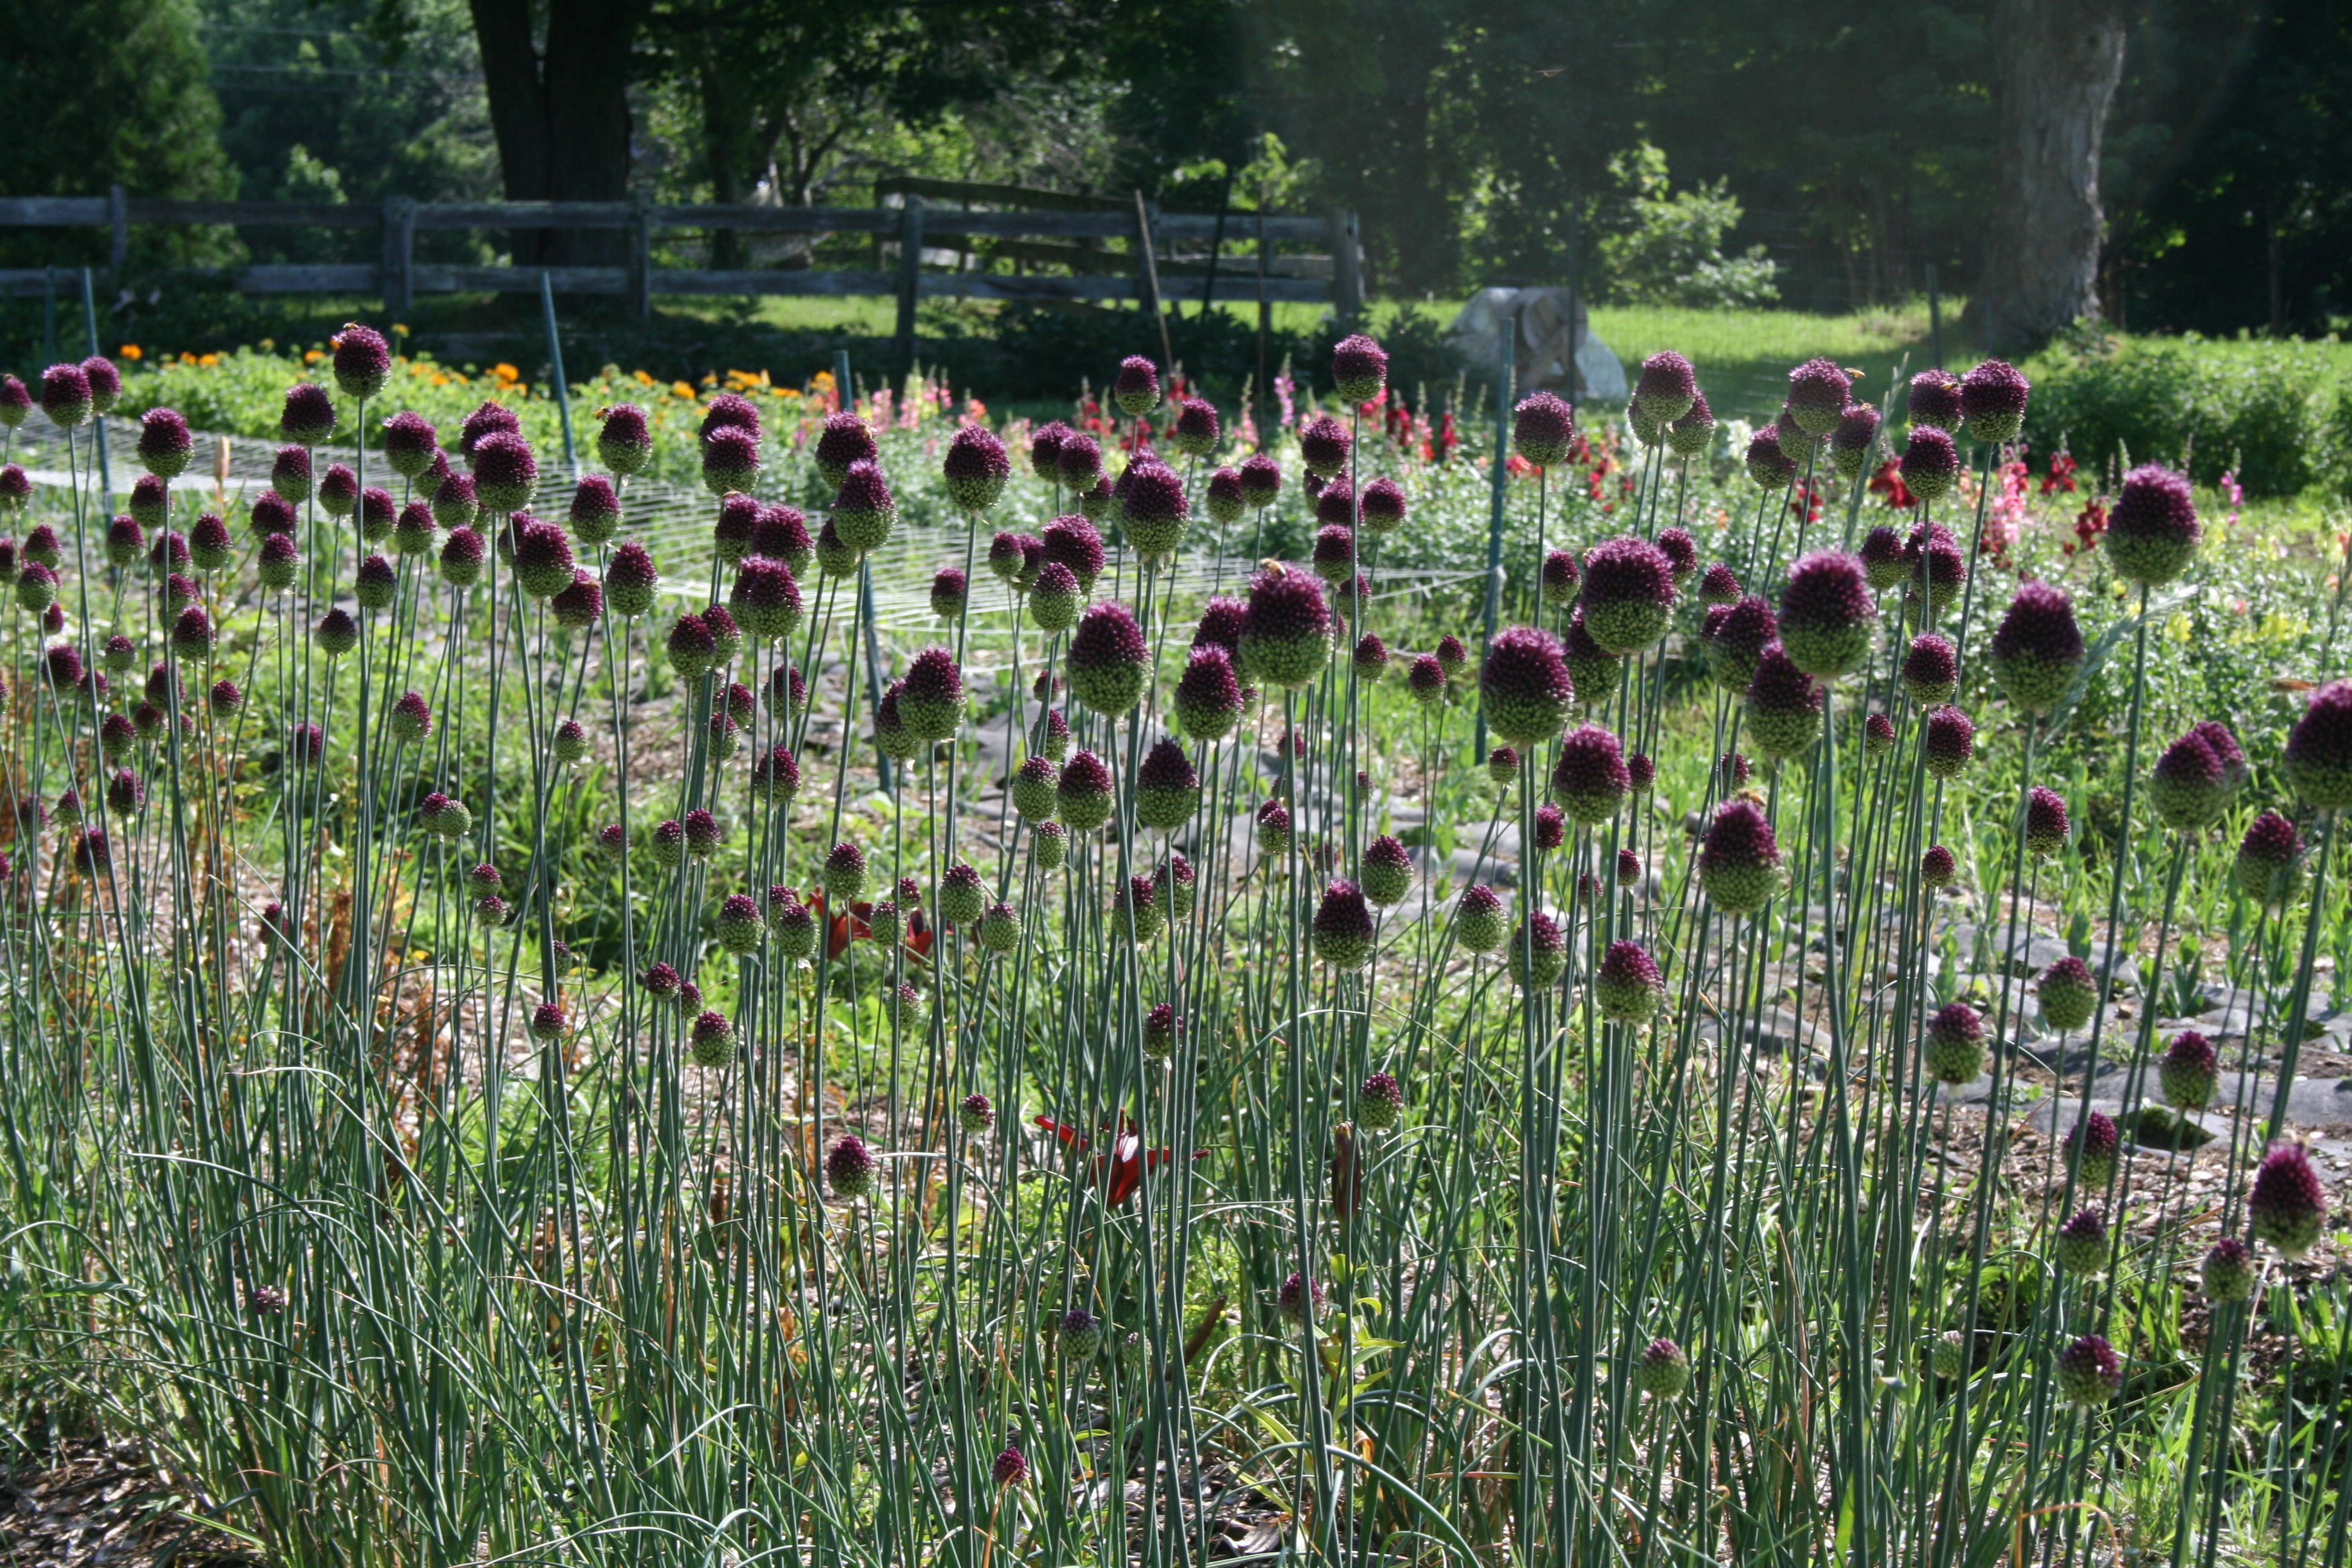 Drumstick Allium Tall Large Medium And Small Flower Heads 7 50 Bunch Small Flowers Flower Farm Flowers